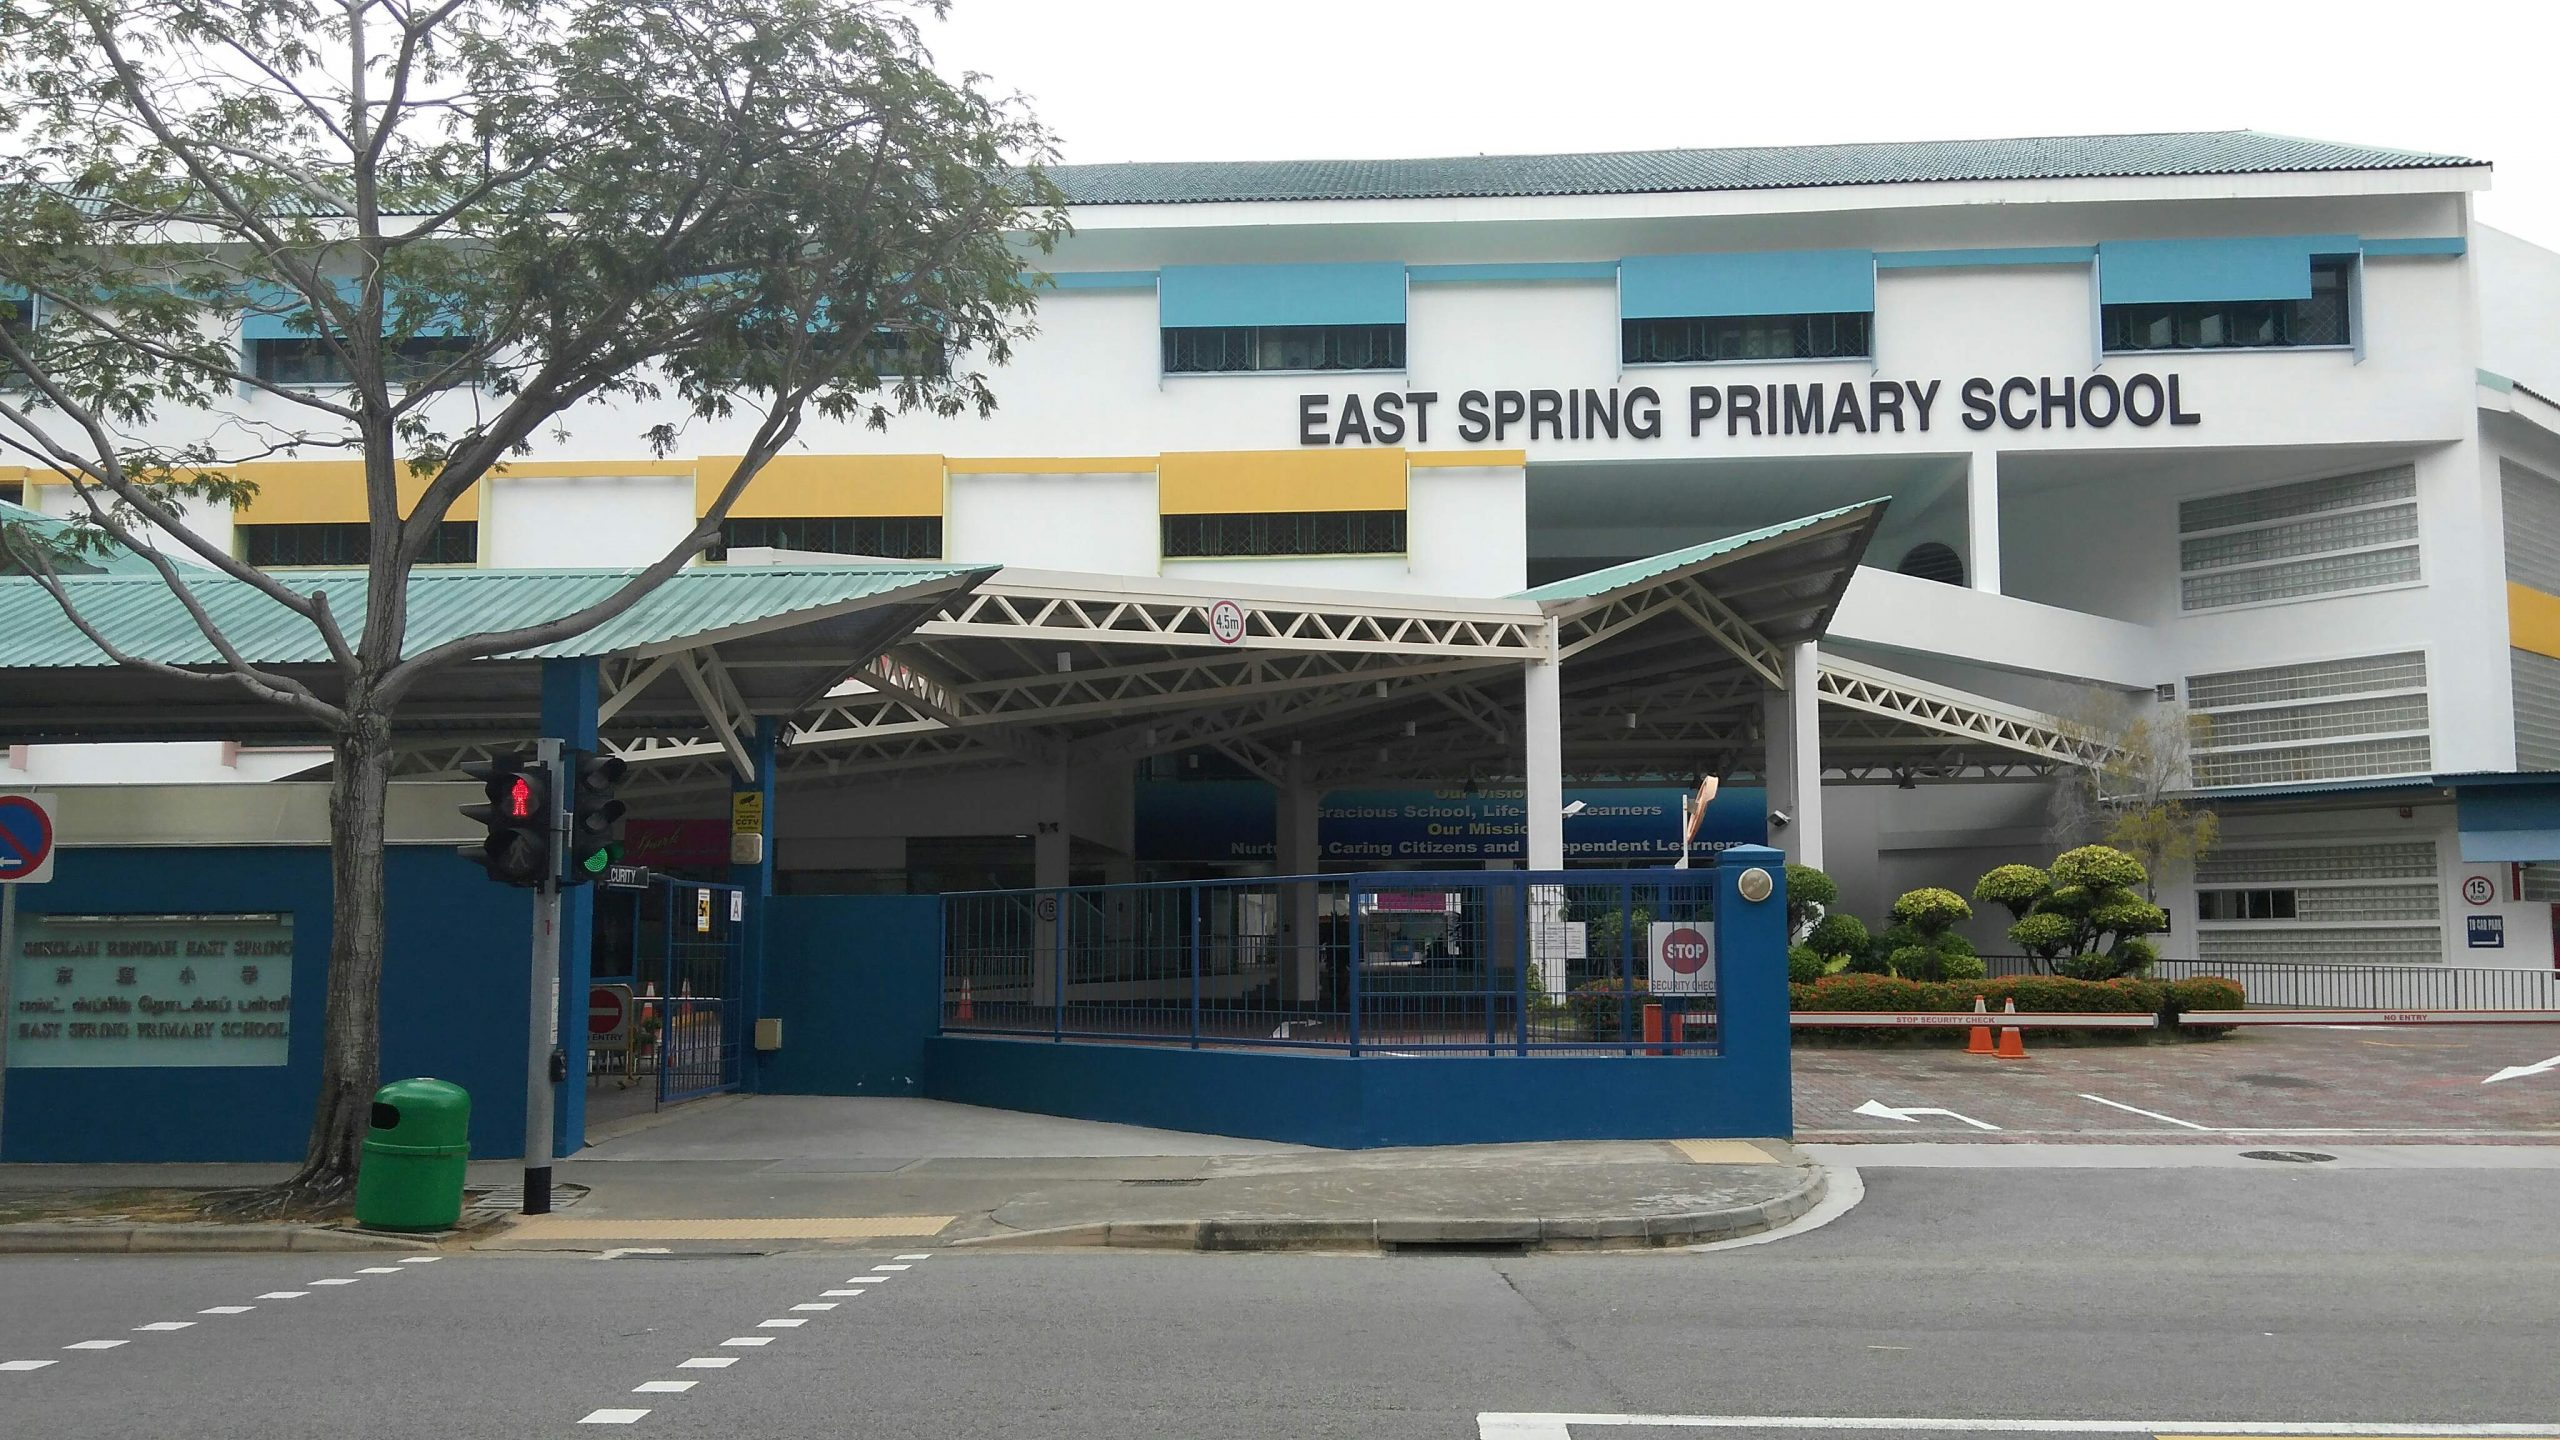 East Spring Primary School